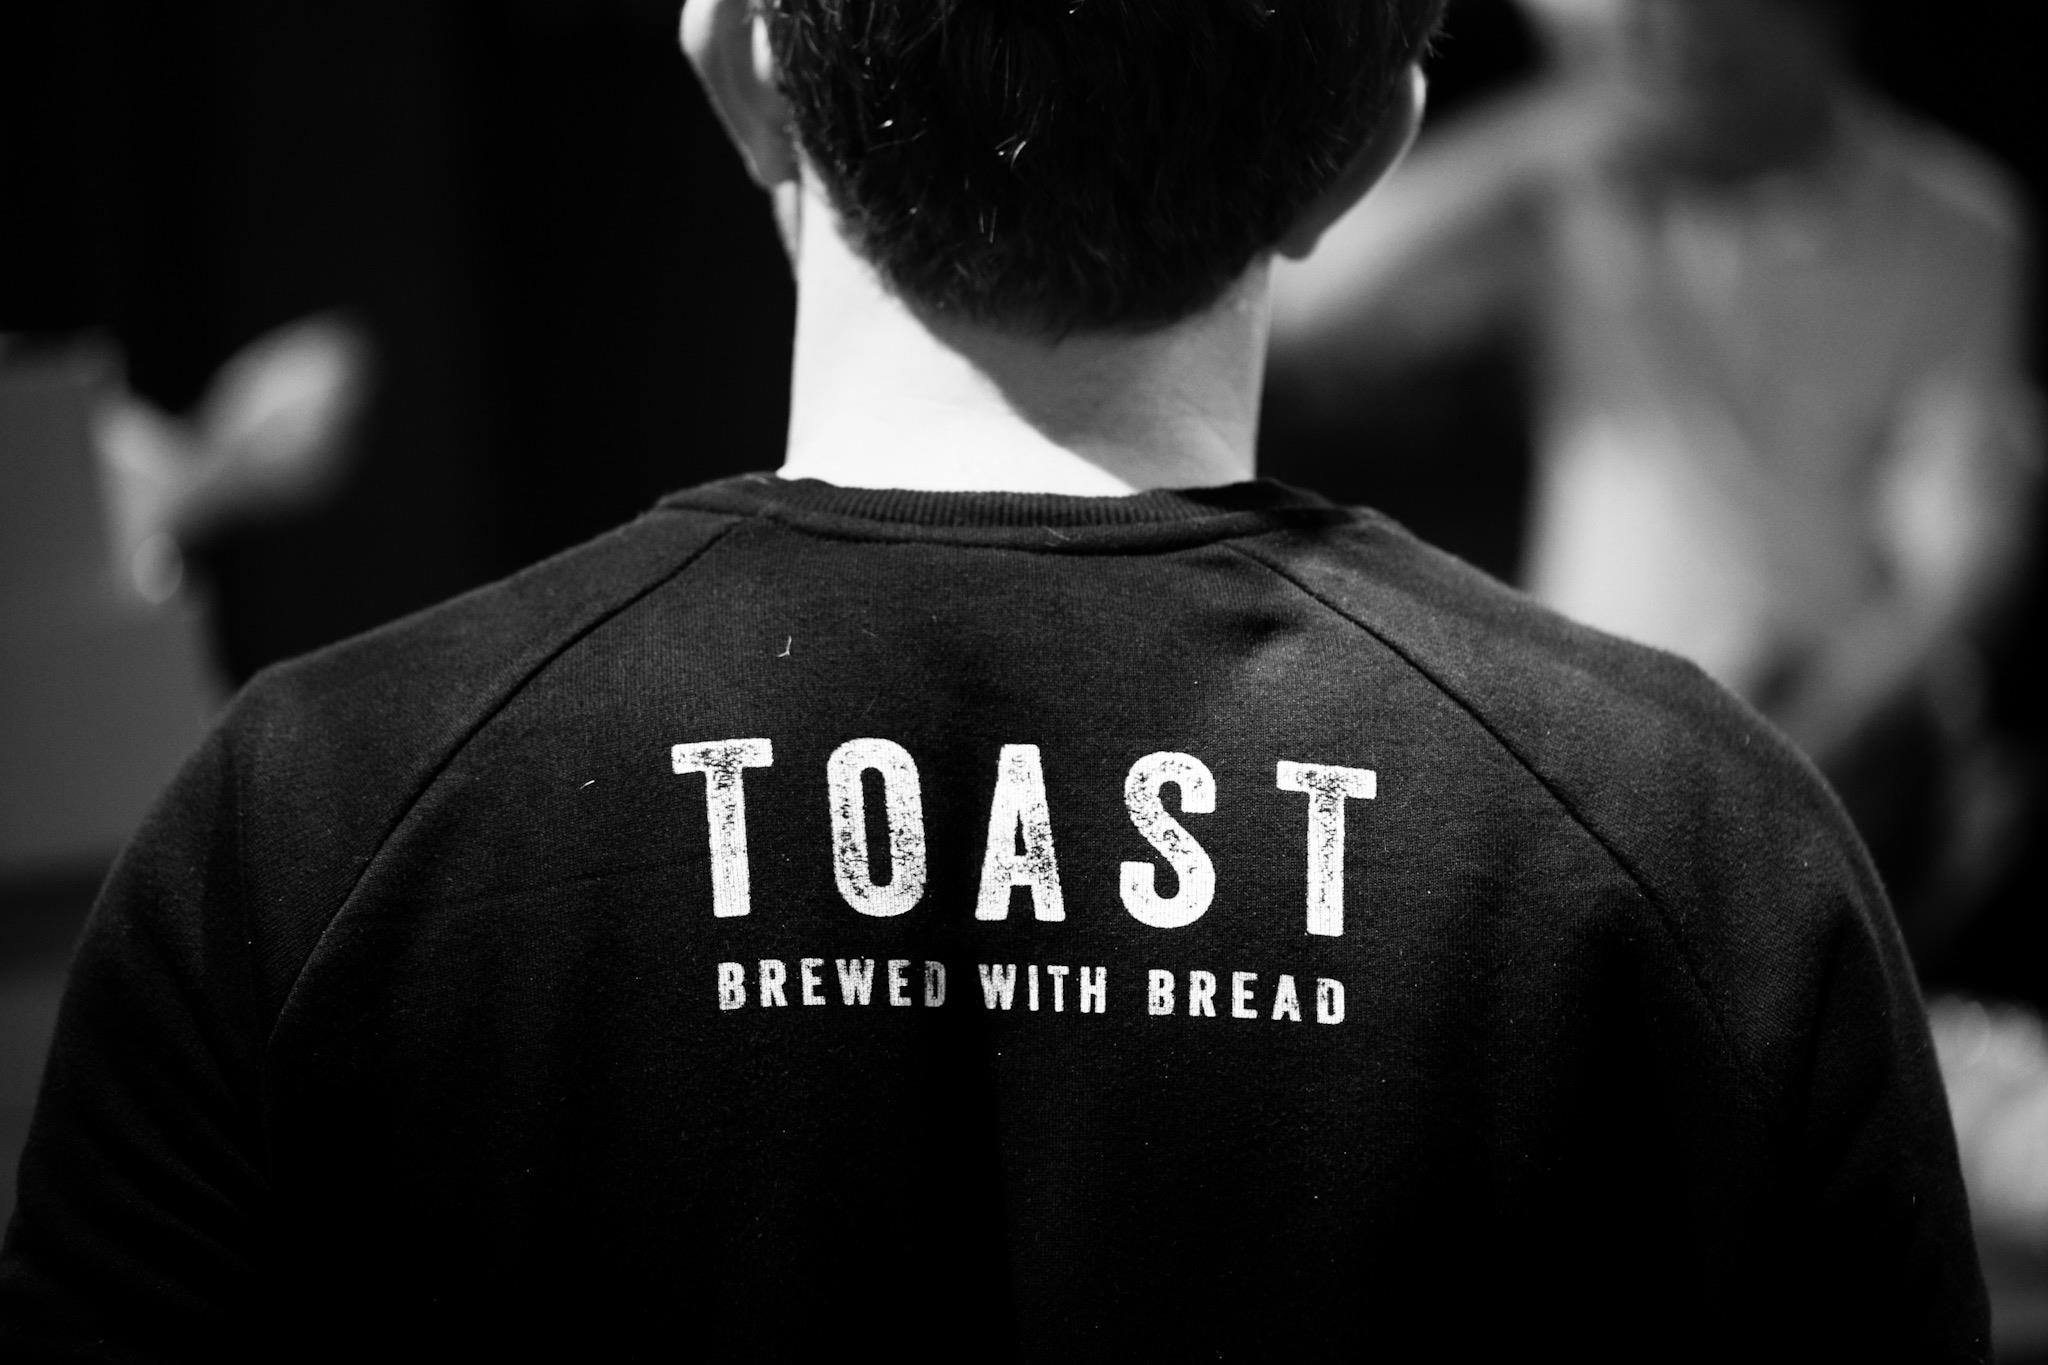 ethical_brands_toast_ale_morethislessthat_02.jpg